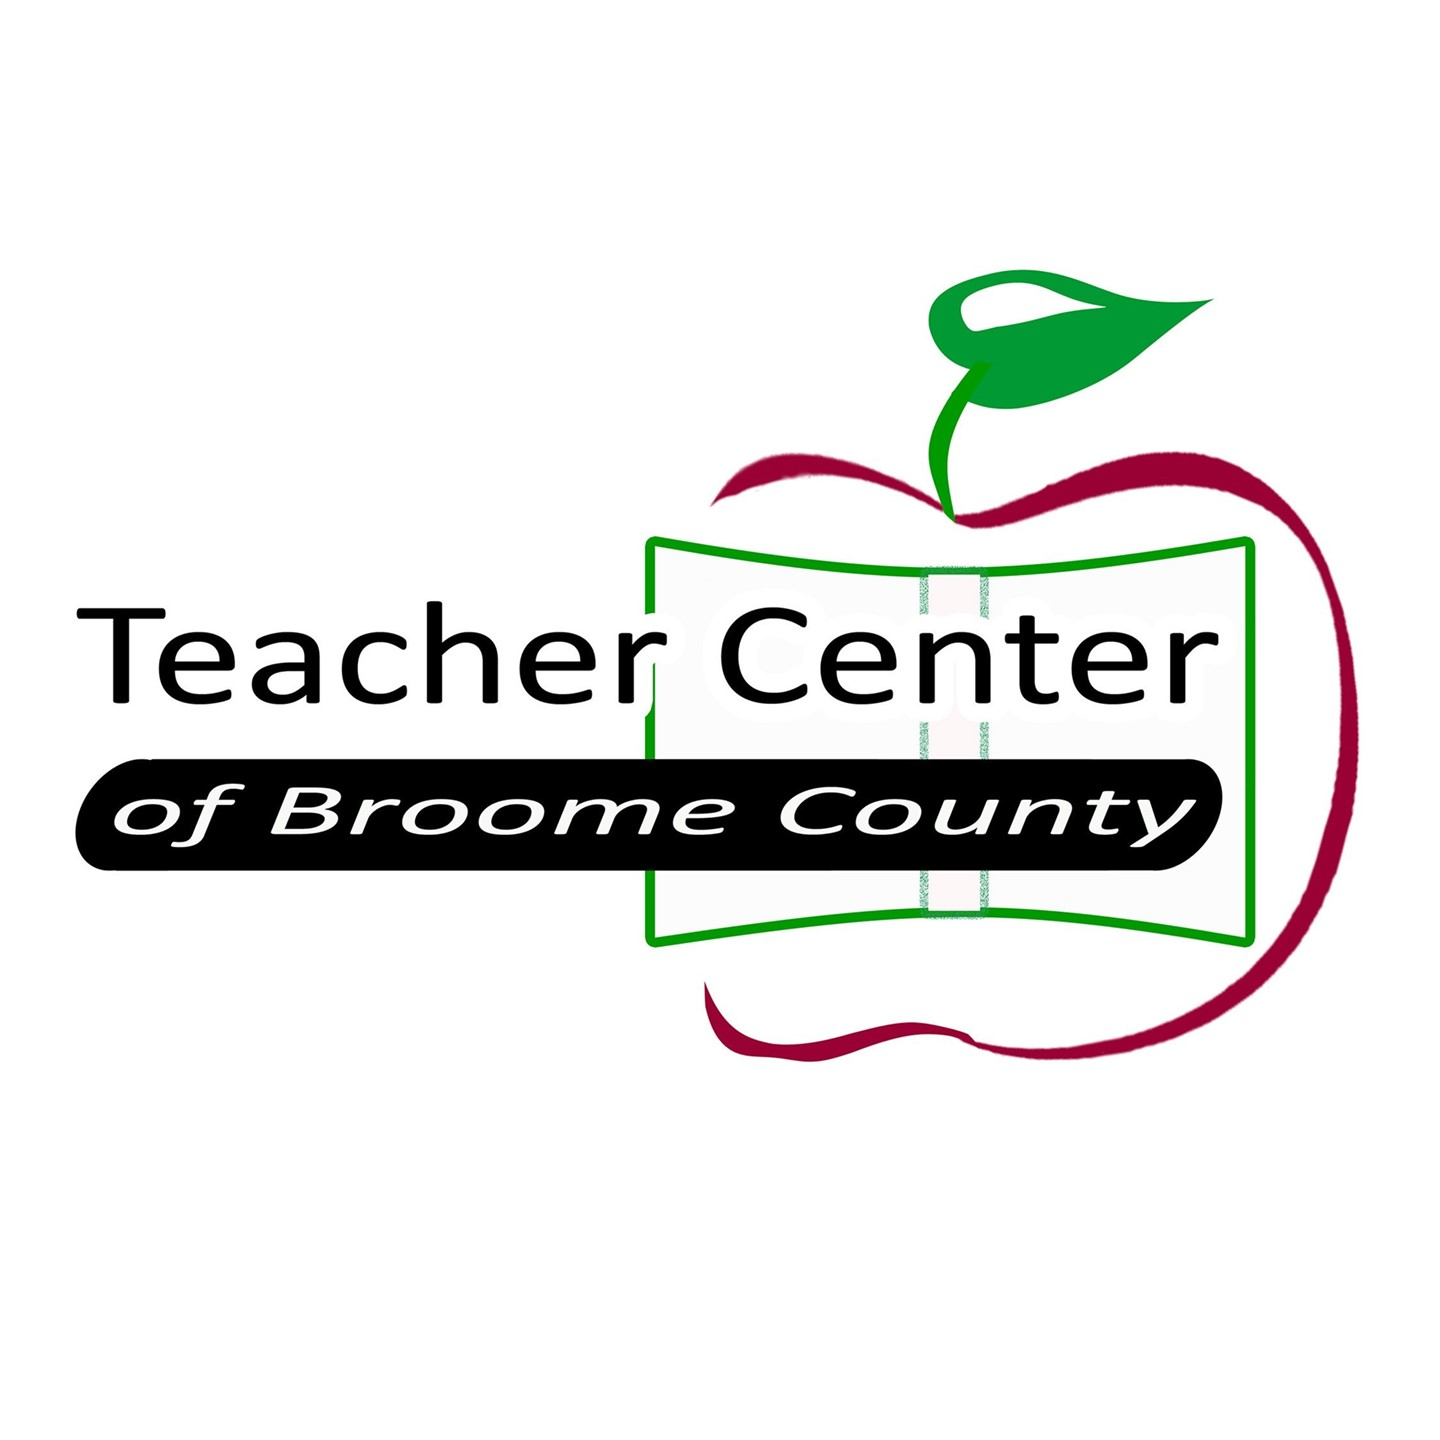 This is the Teacher Center of Broome County Logo. There is a half apple with a book across the apple. The apple is outlined red and has a green leaf.